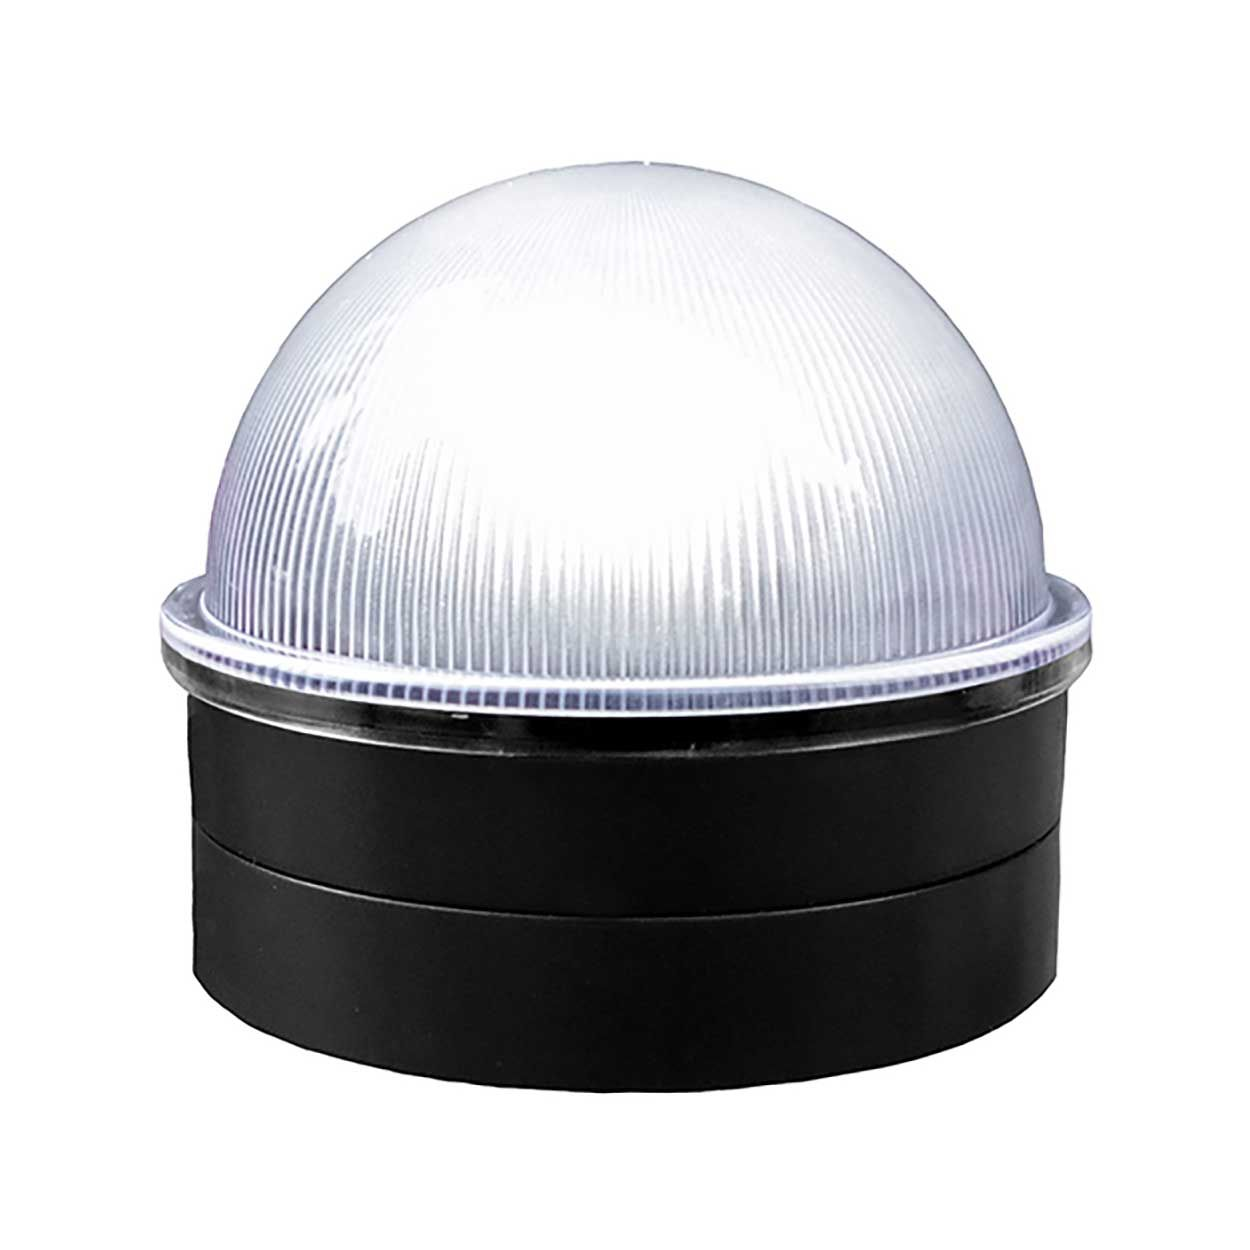 Classy Caps Summit Solar Lighting Post Caps for Round Chain Link Fence Posts - Black